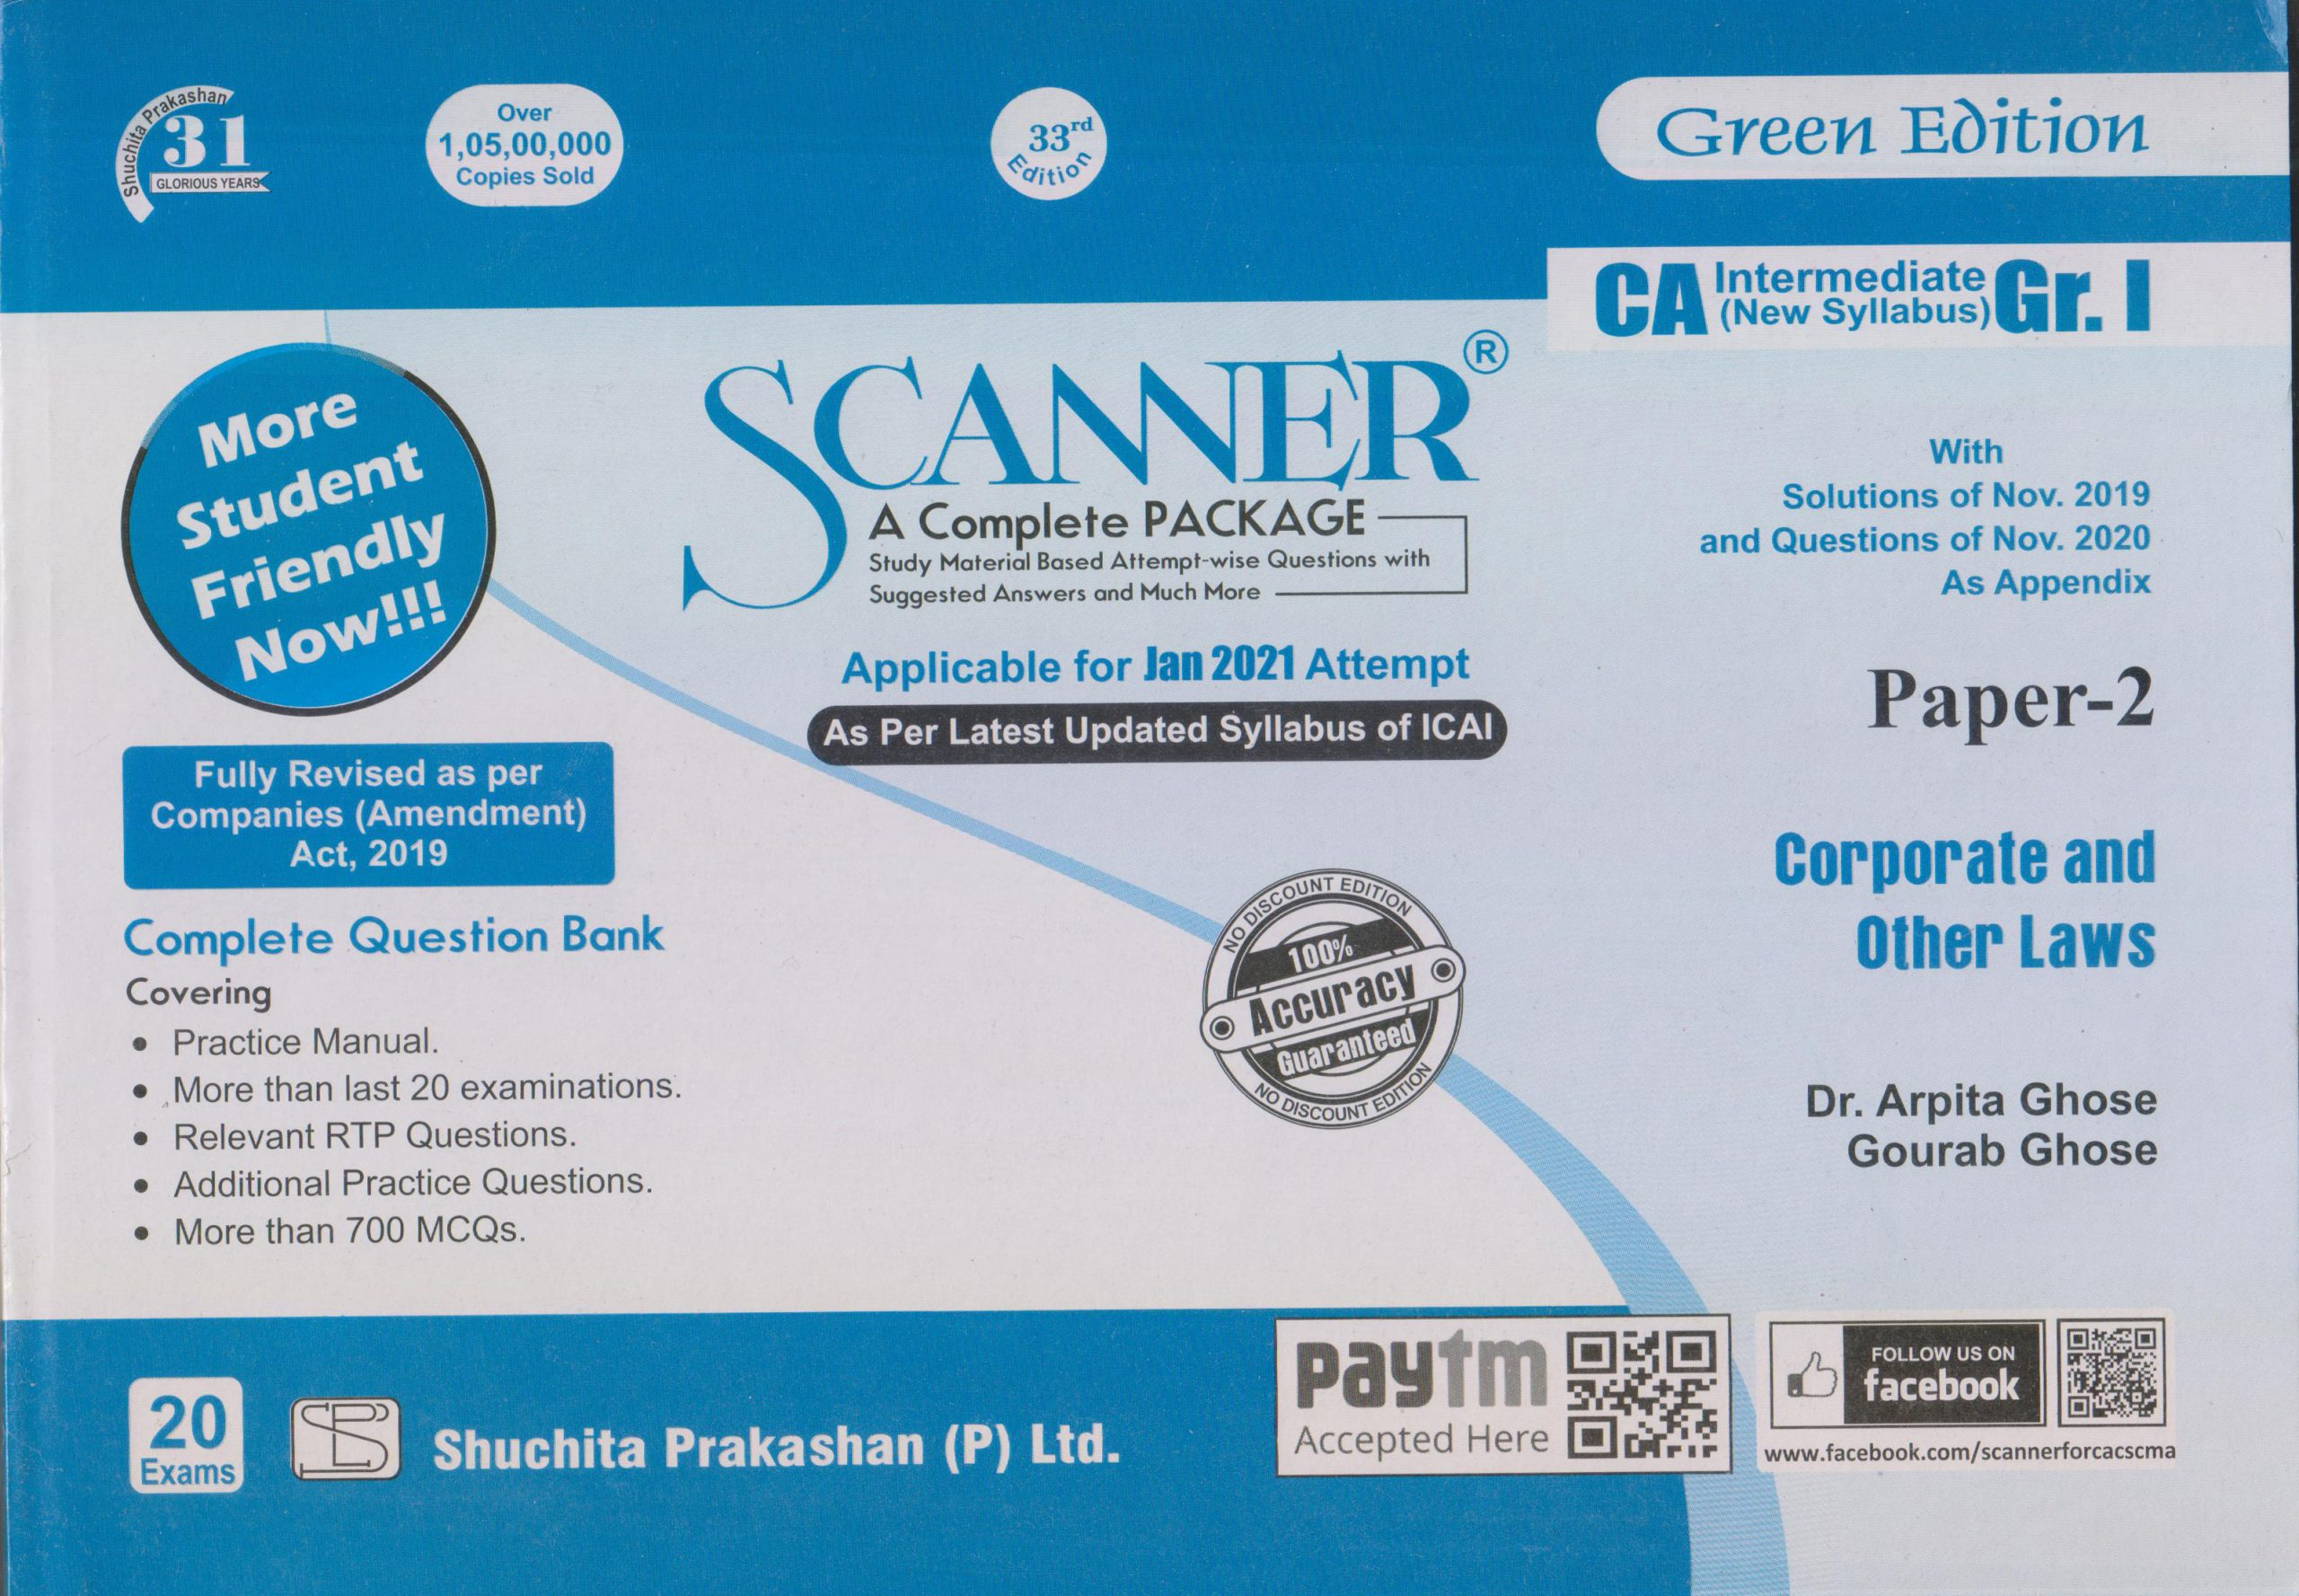 Shuchita CA Inter Group I Paper-2 Solved Scanner Corporate and Other Laws for 2021 ATTEMPT